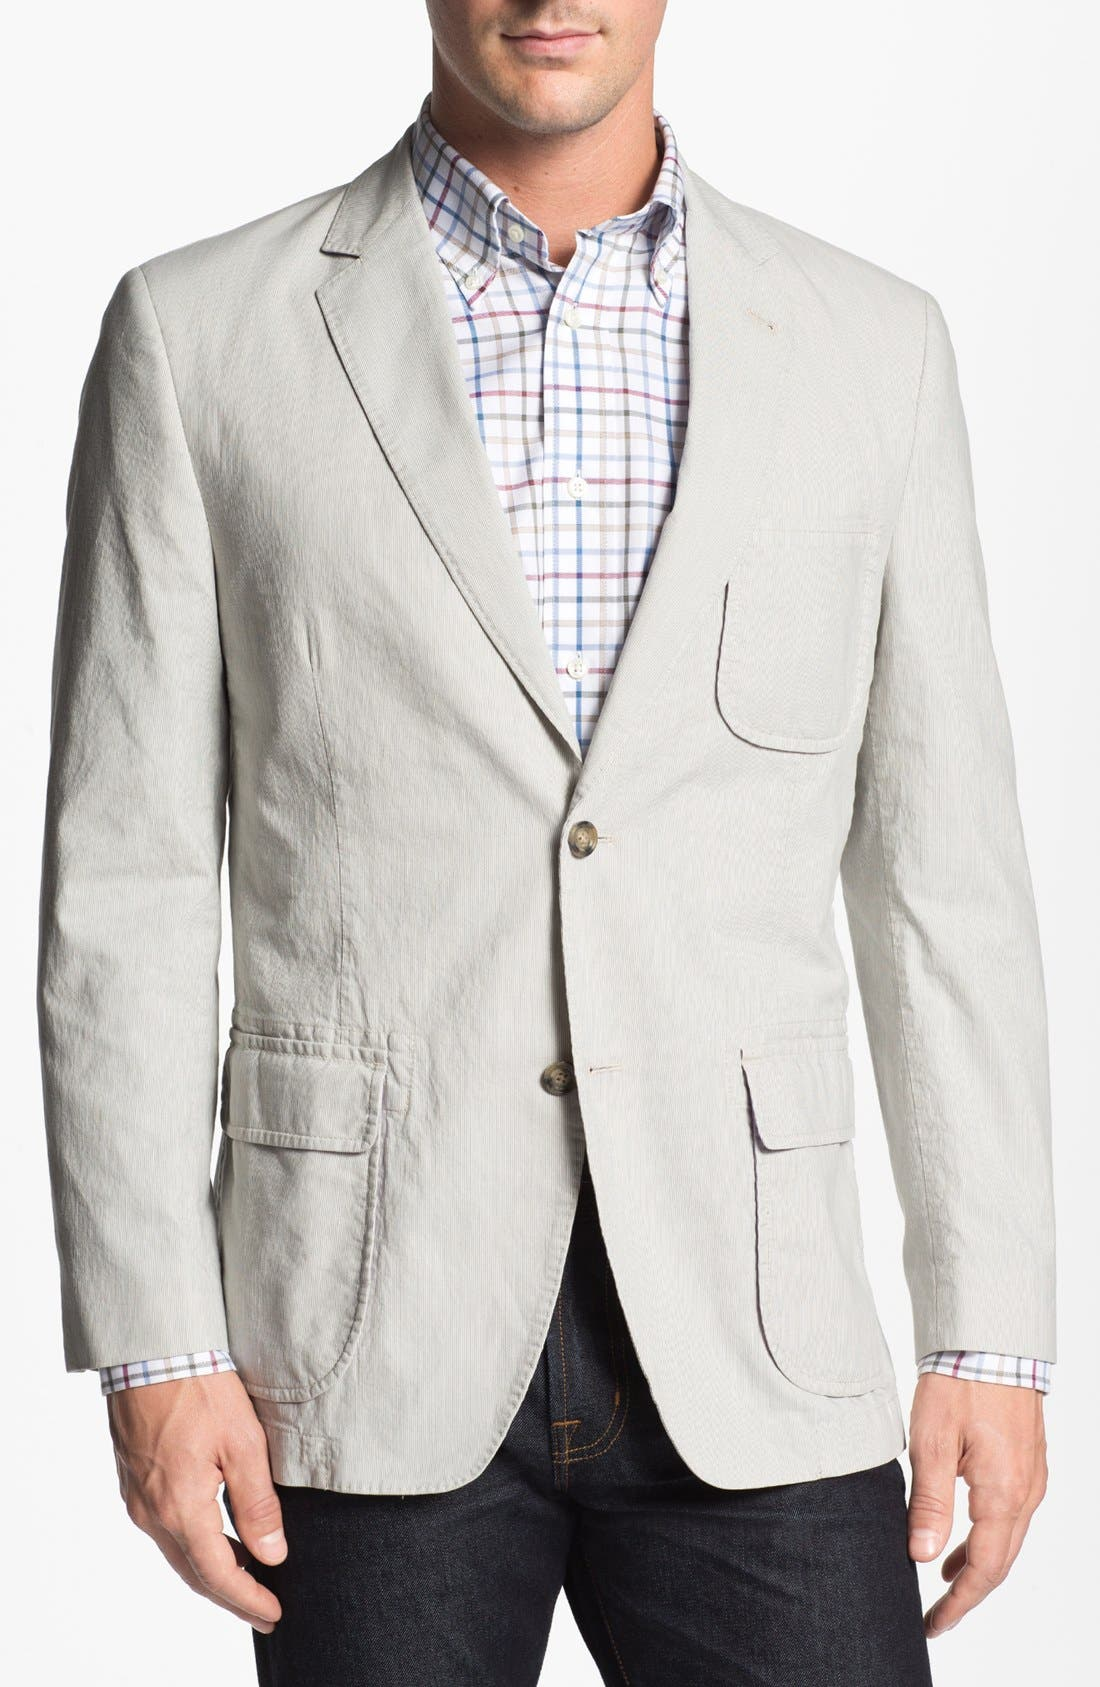 Main Image - Kroon 'Harrison' Cotton Blend Sportcoat